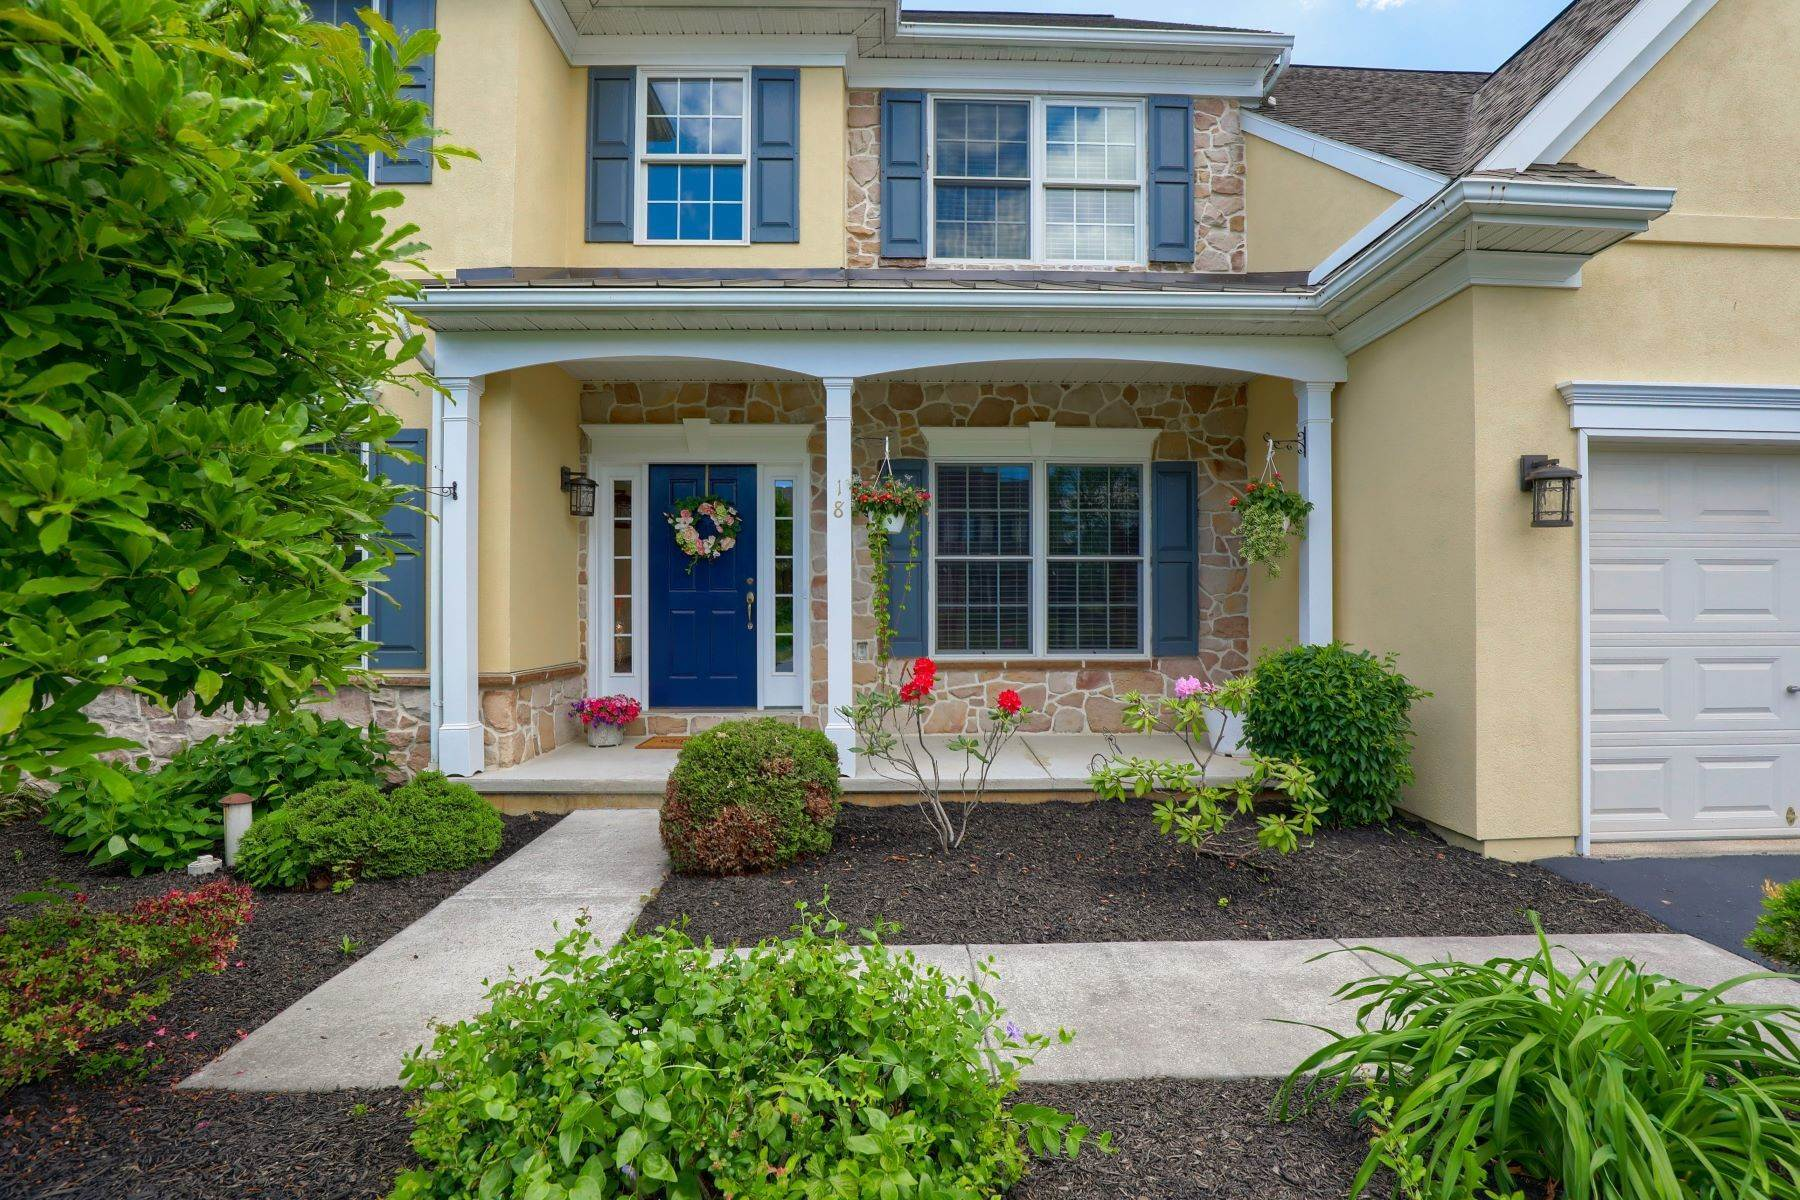 43. Single Family Homes for Sale at 18 Jared Place Lititz, Pennsylvania 17543 United States